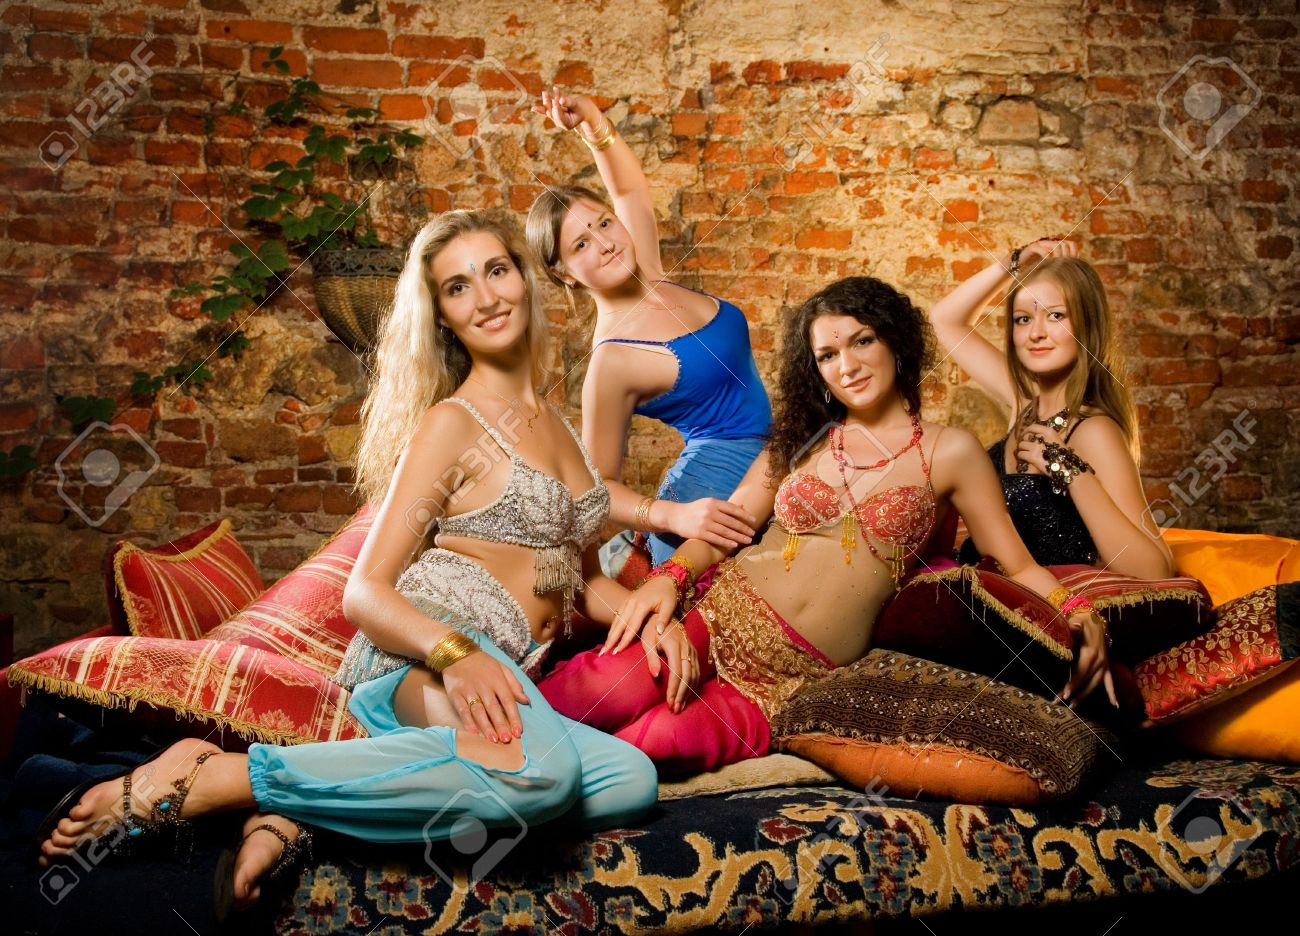 3246665-group-of-beautiful-women-in-harem-stock-photo-harem-belly-girl